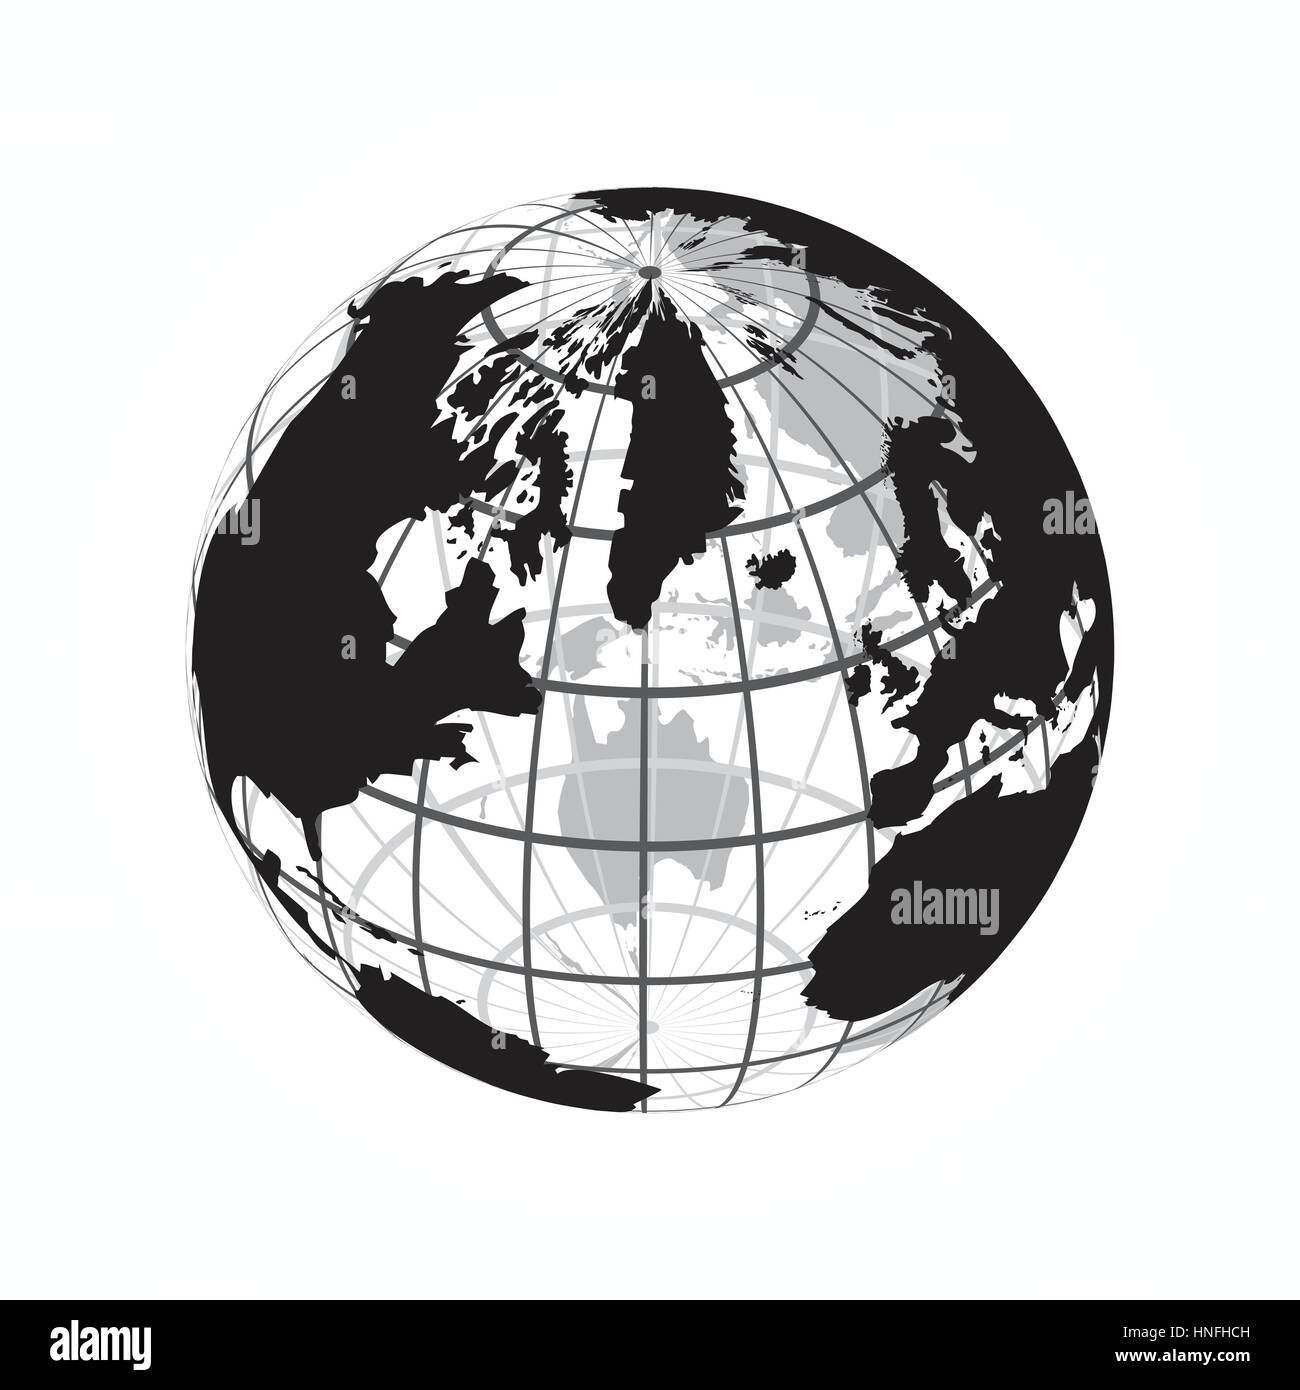 Around the world outline of world map with latitude and longitude around the world outline of world map with latitude and longitude gumiabroncs Gallery